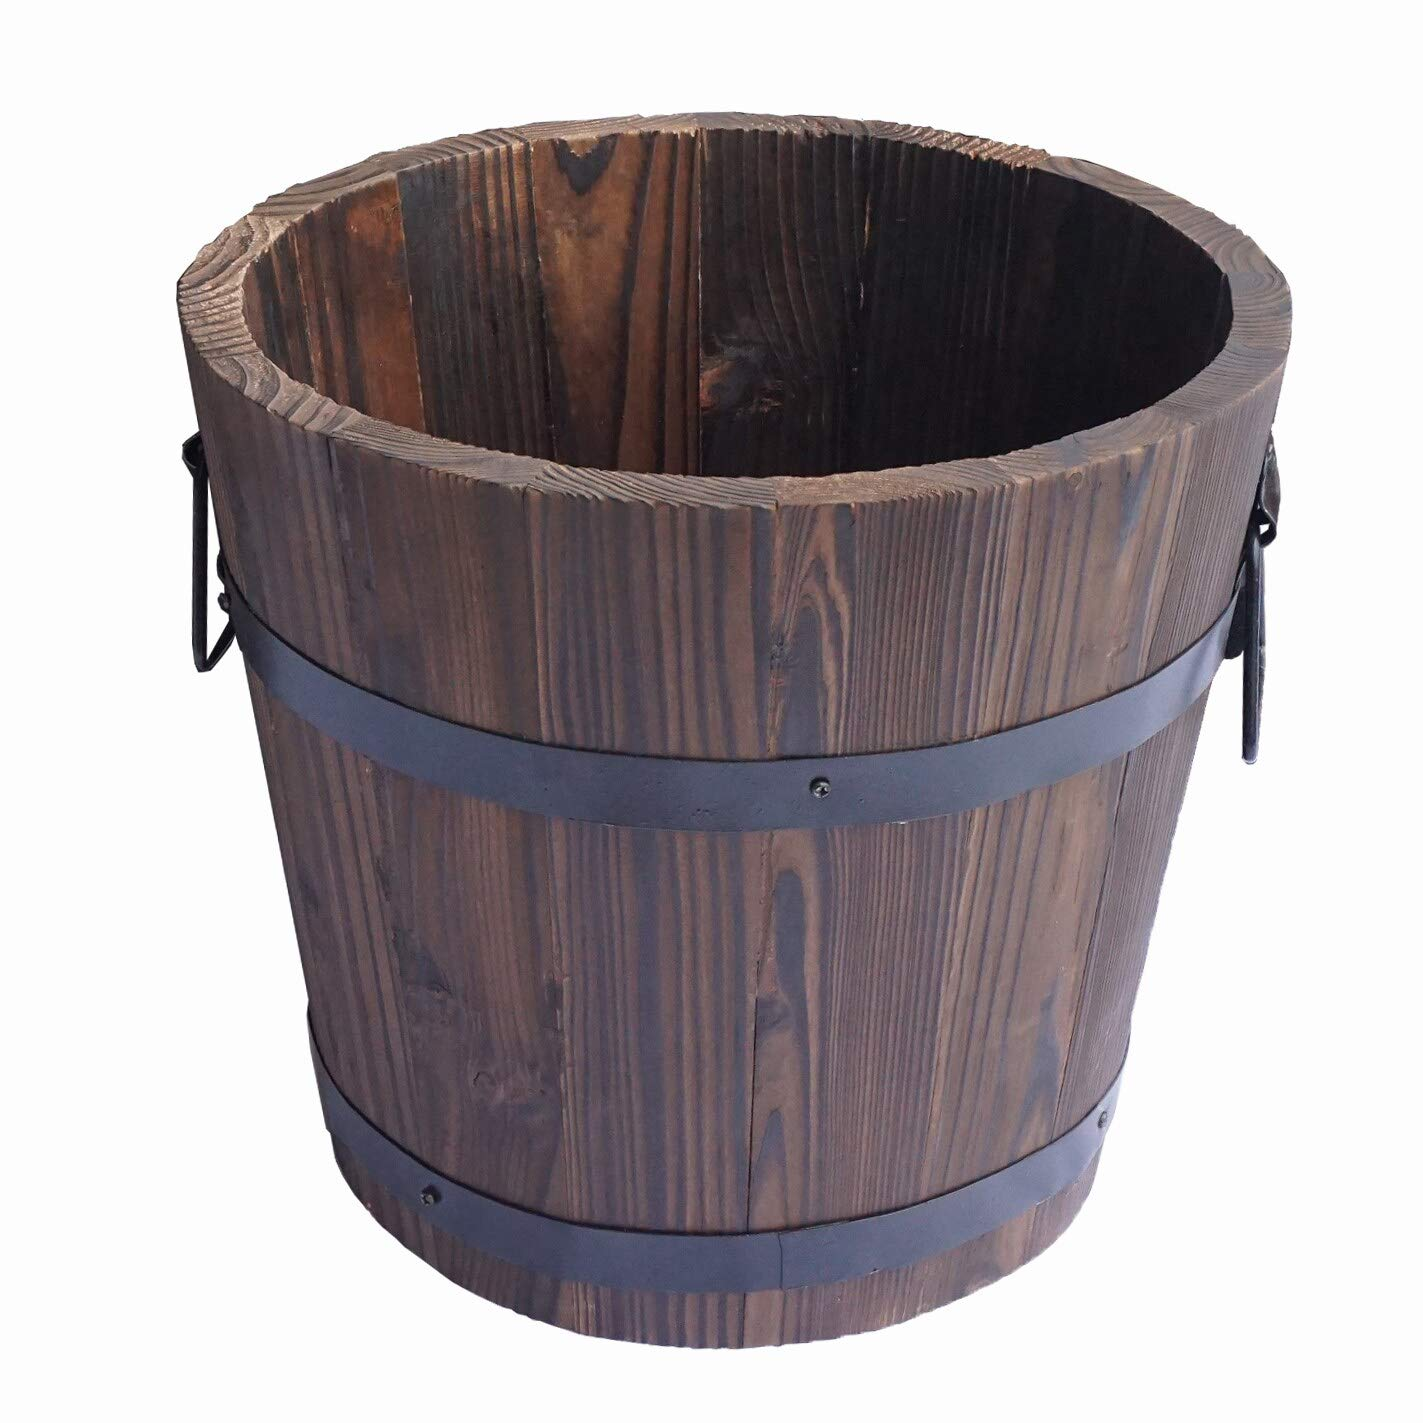 Extra Large Wooden Whiskey Barrel Planter, 12 Dia 10 High